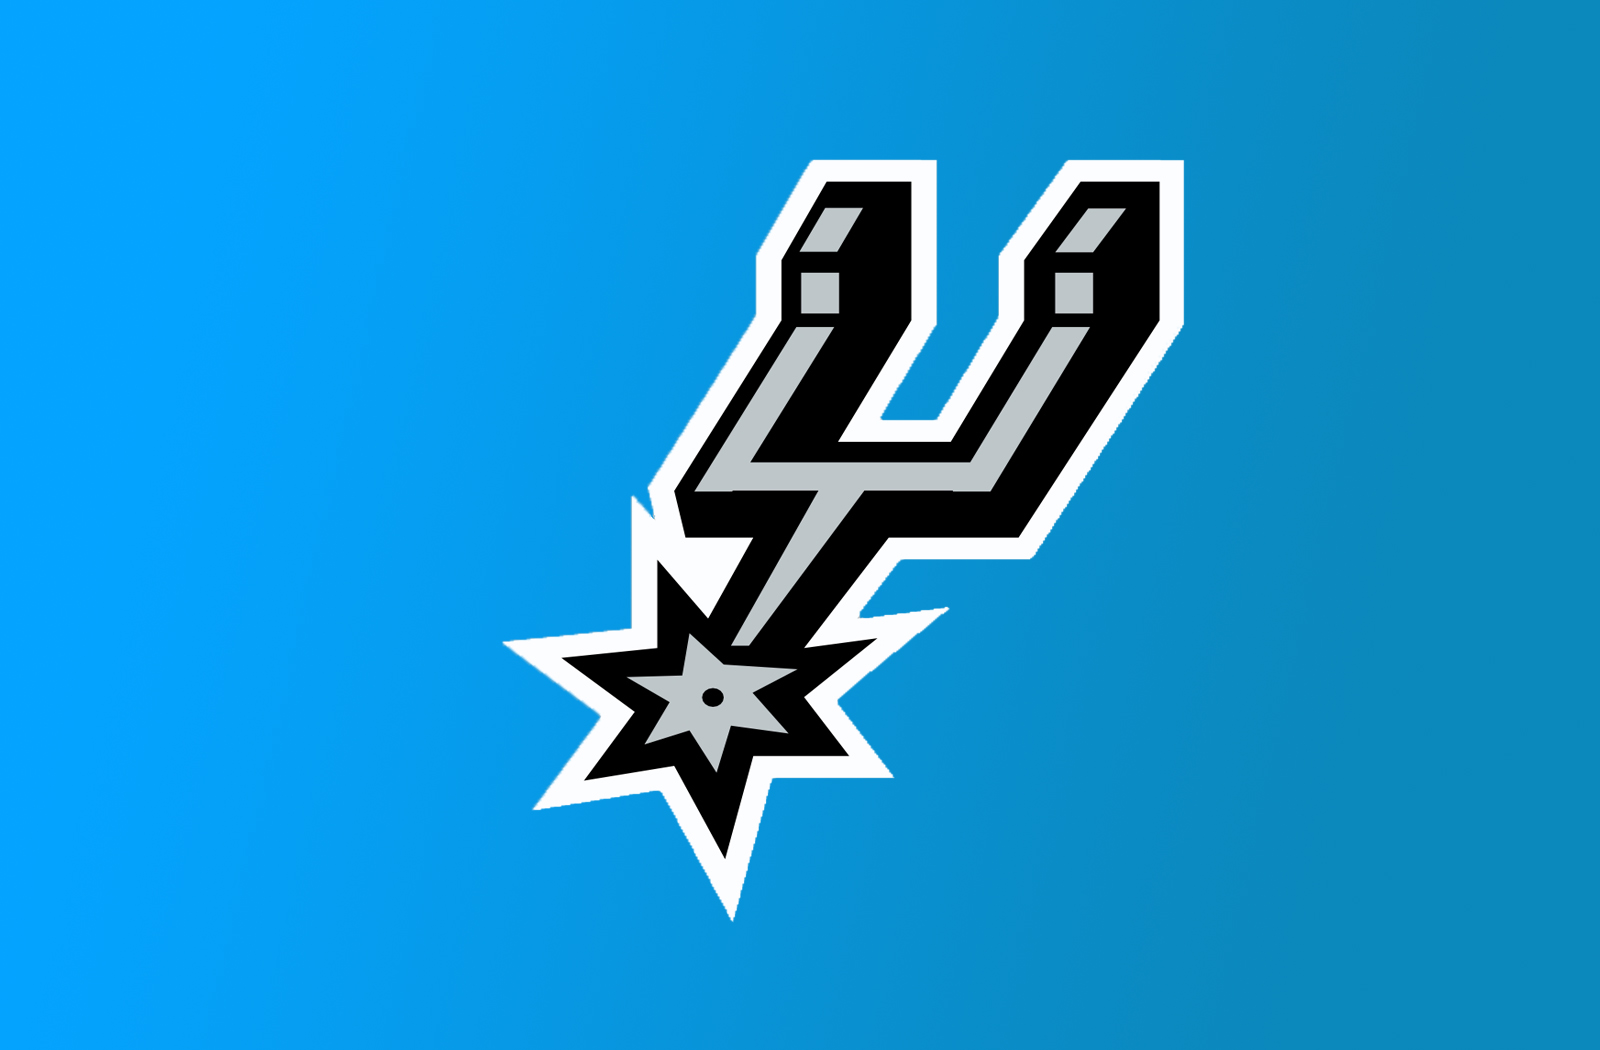 San Antonio Spurs Logo Desktop Wallpaper HD large resolution 1600x1050